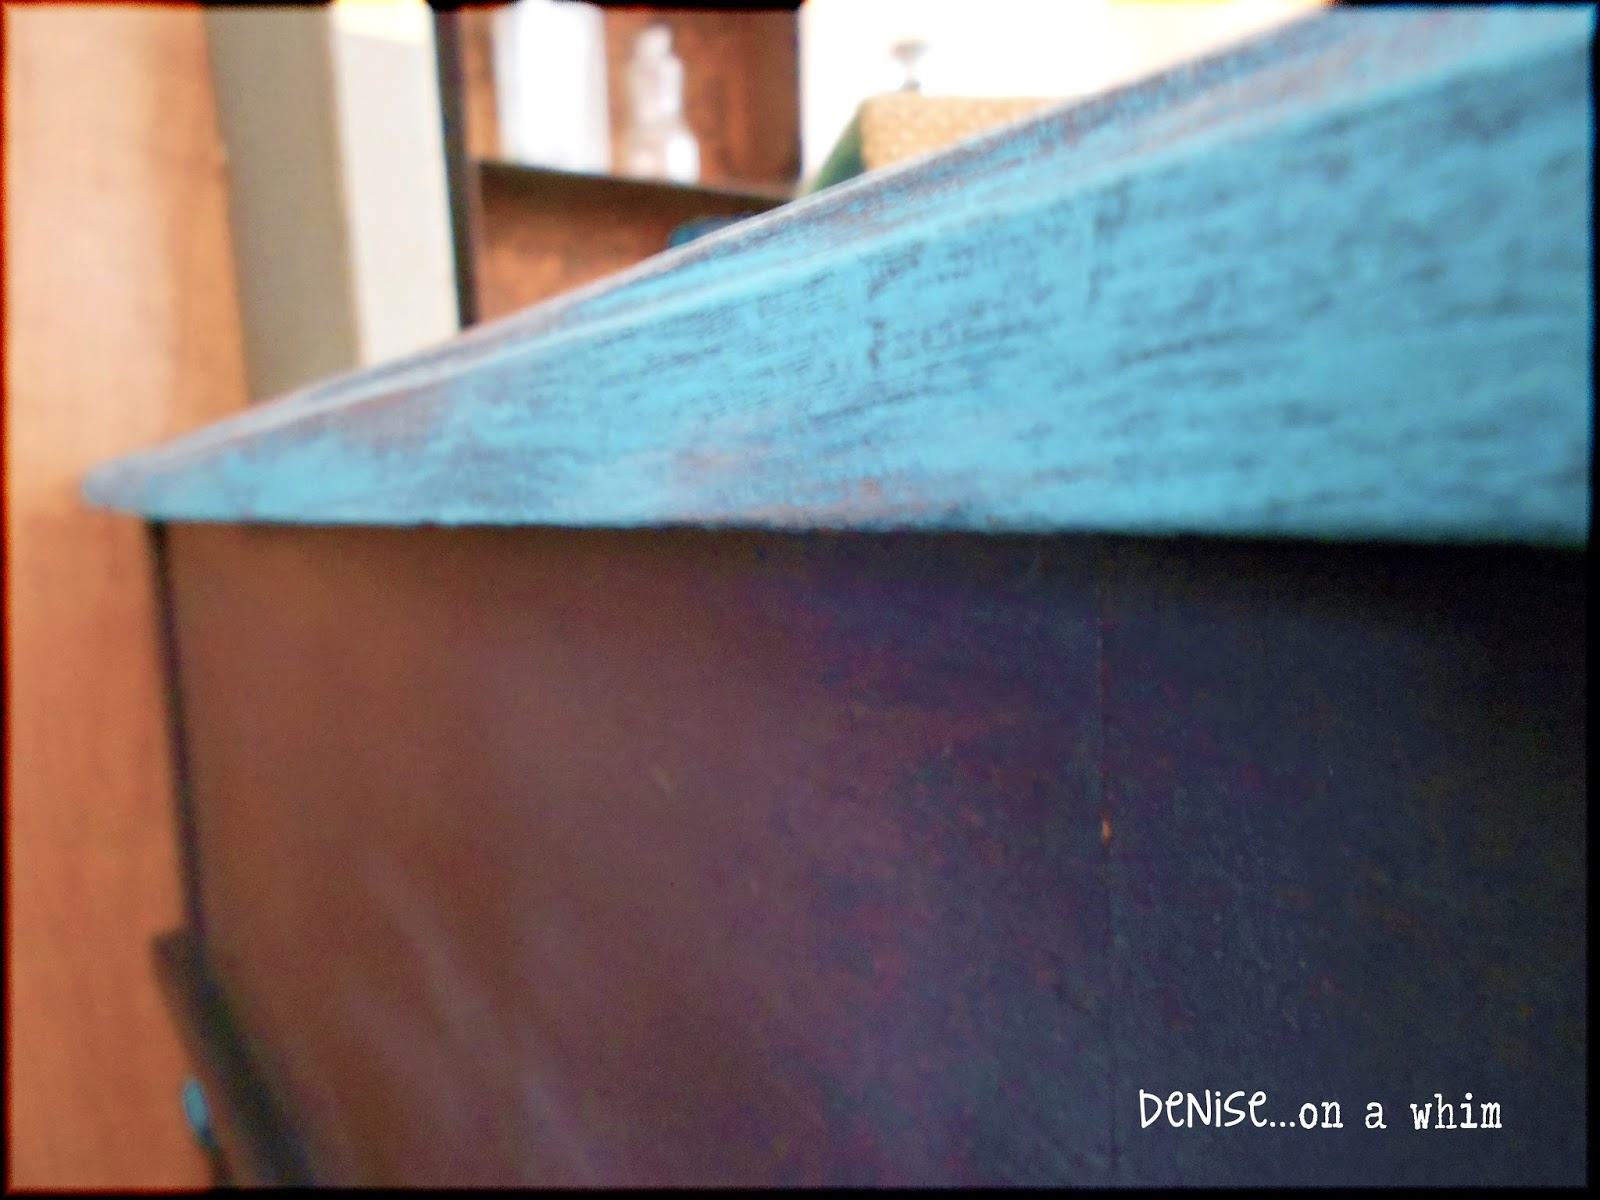 Beckley Coal Chalk Paint on an end table via http://deniseonawhim.blogspot.com